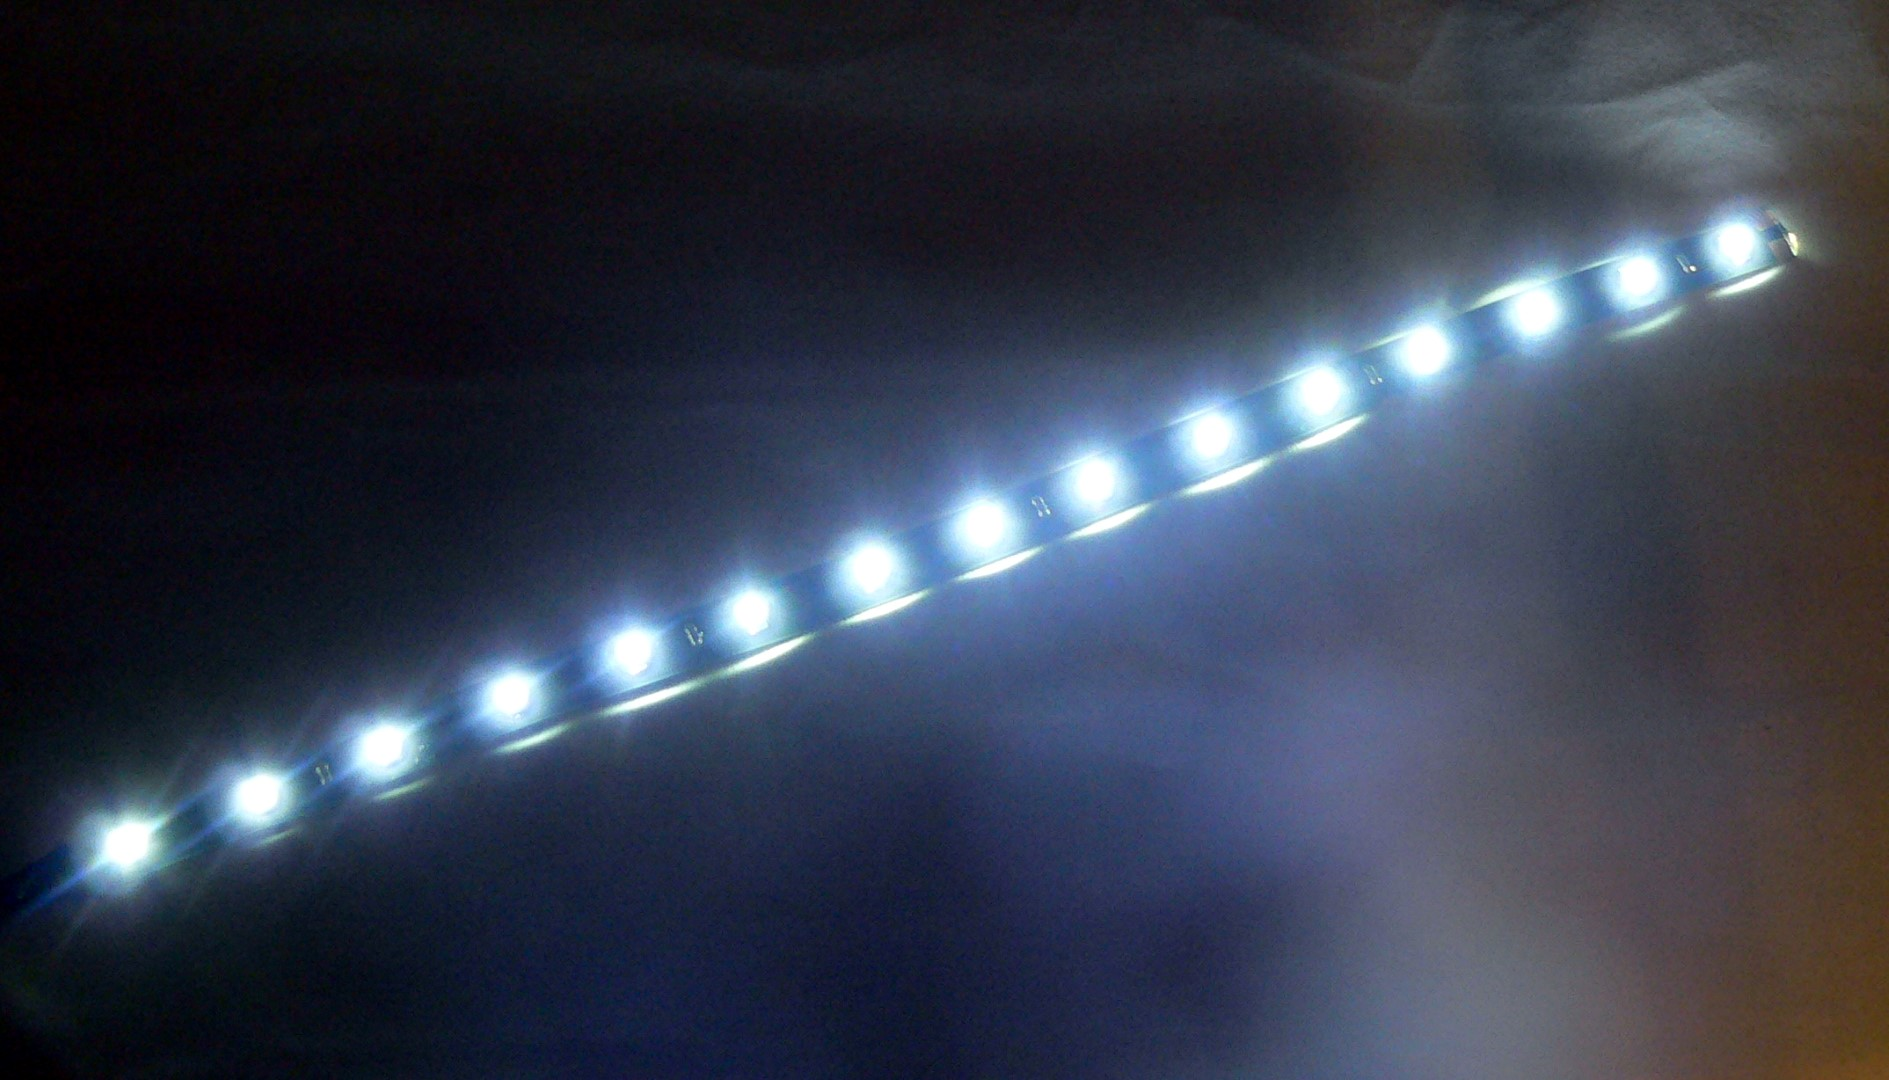 White 15 LED Strip Adhesive Backed 1 Foot (30cm) Long